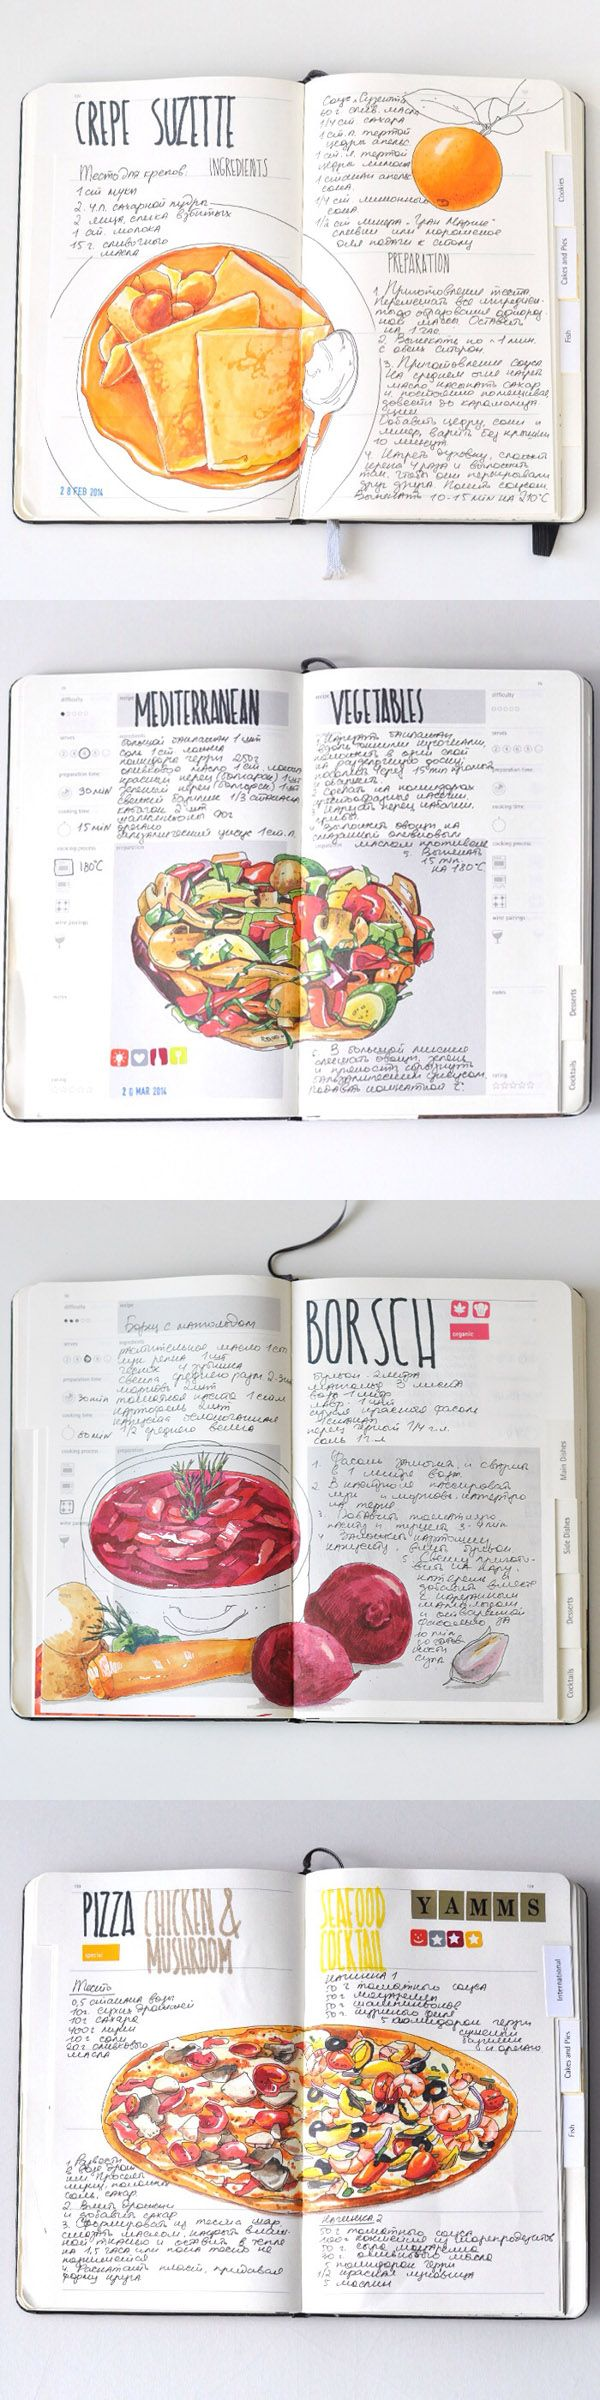 Recipe journal 2014 by Sally Mao - my weekend and next week cooking planned! #Illustration #cooking